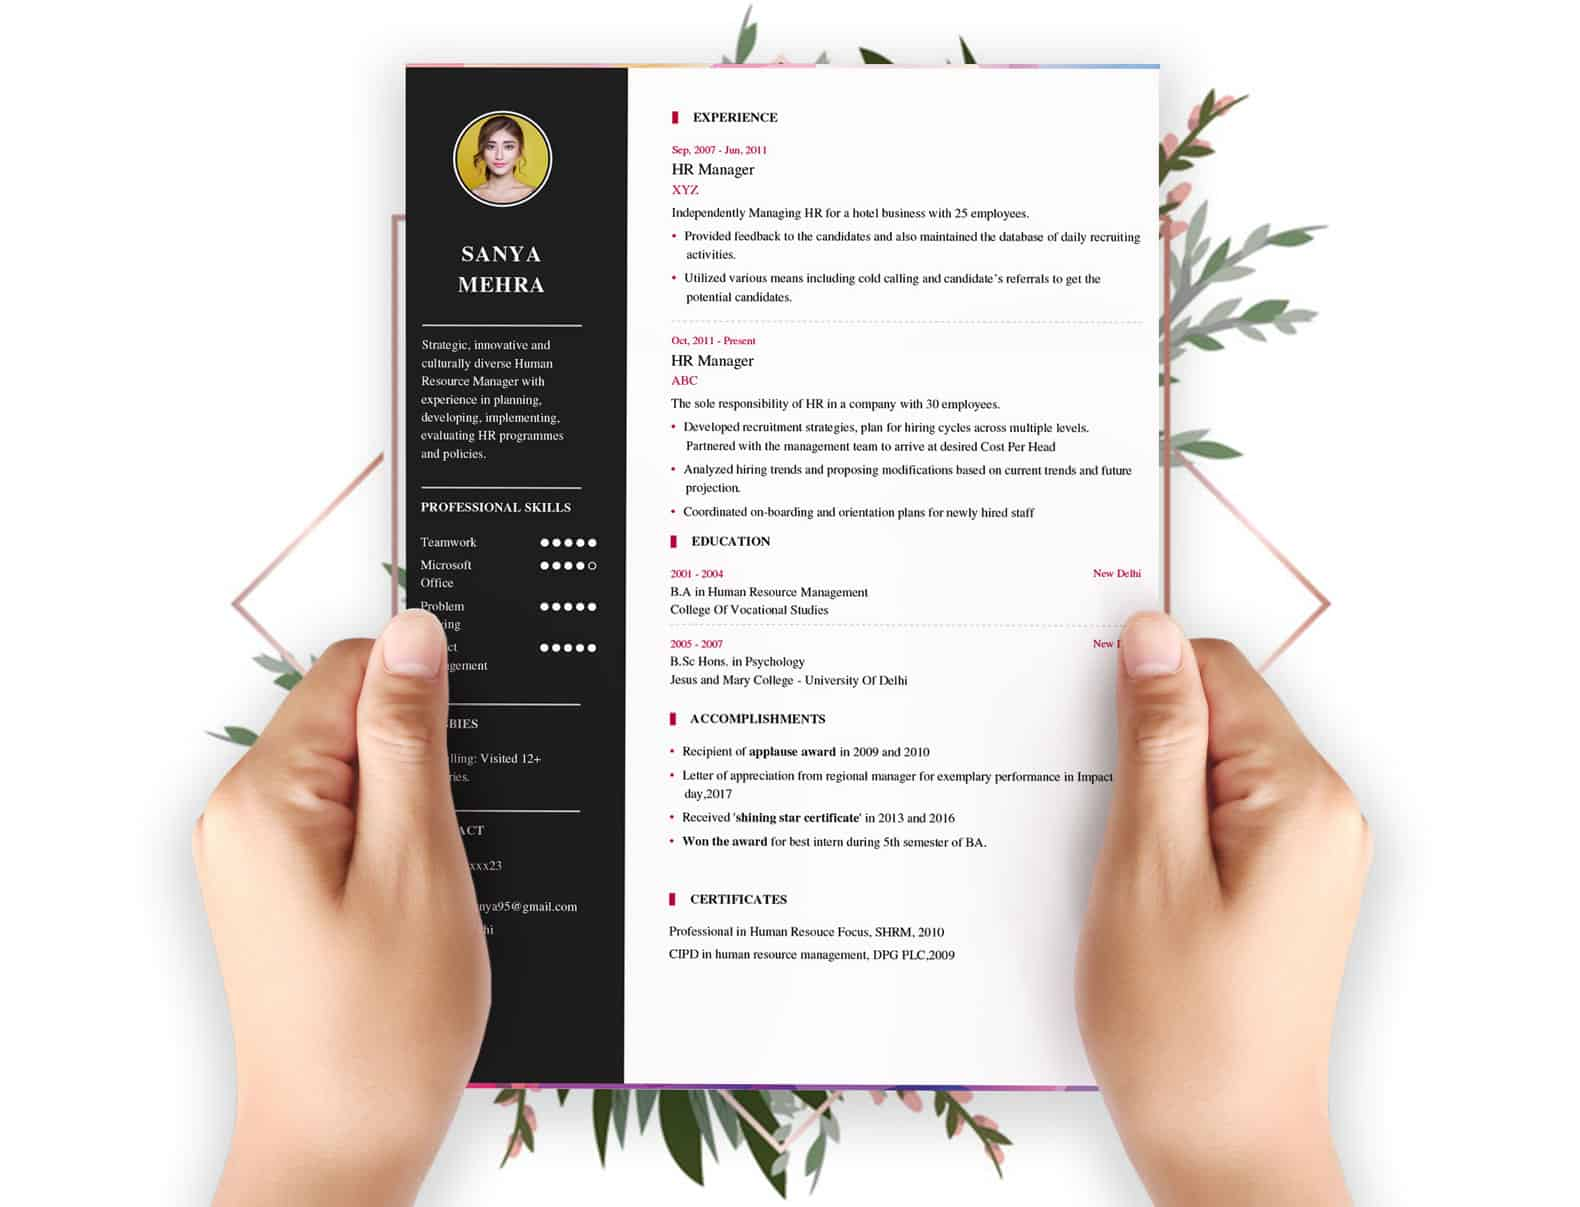 Resume Builder - Free Resume builder. Latest Resume Format 2019